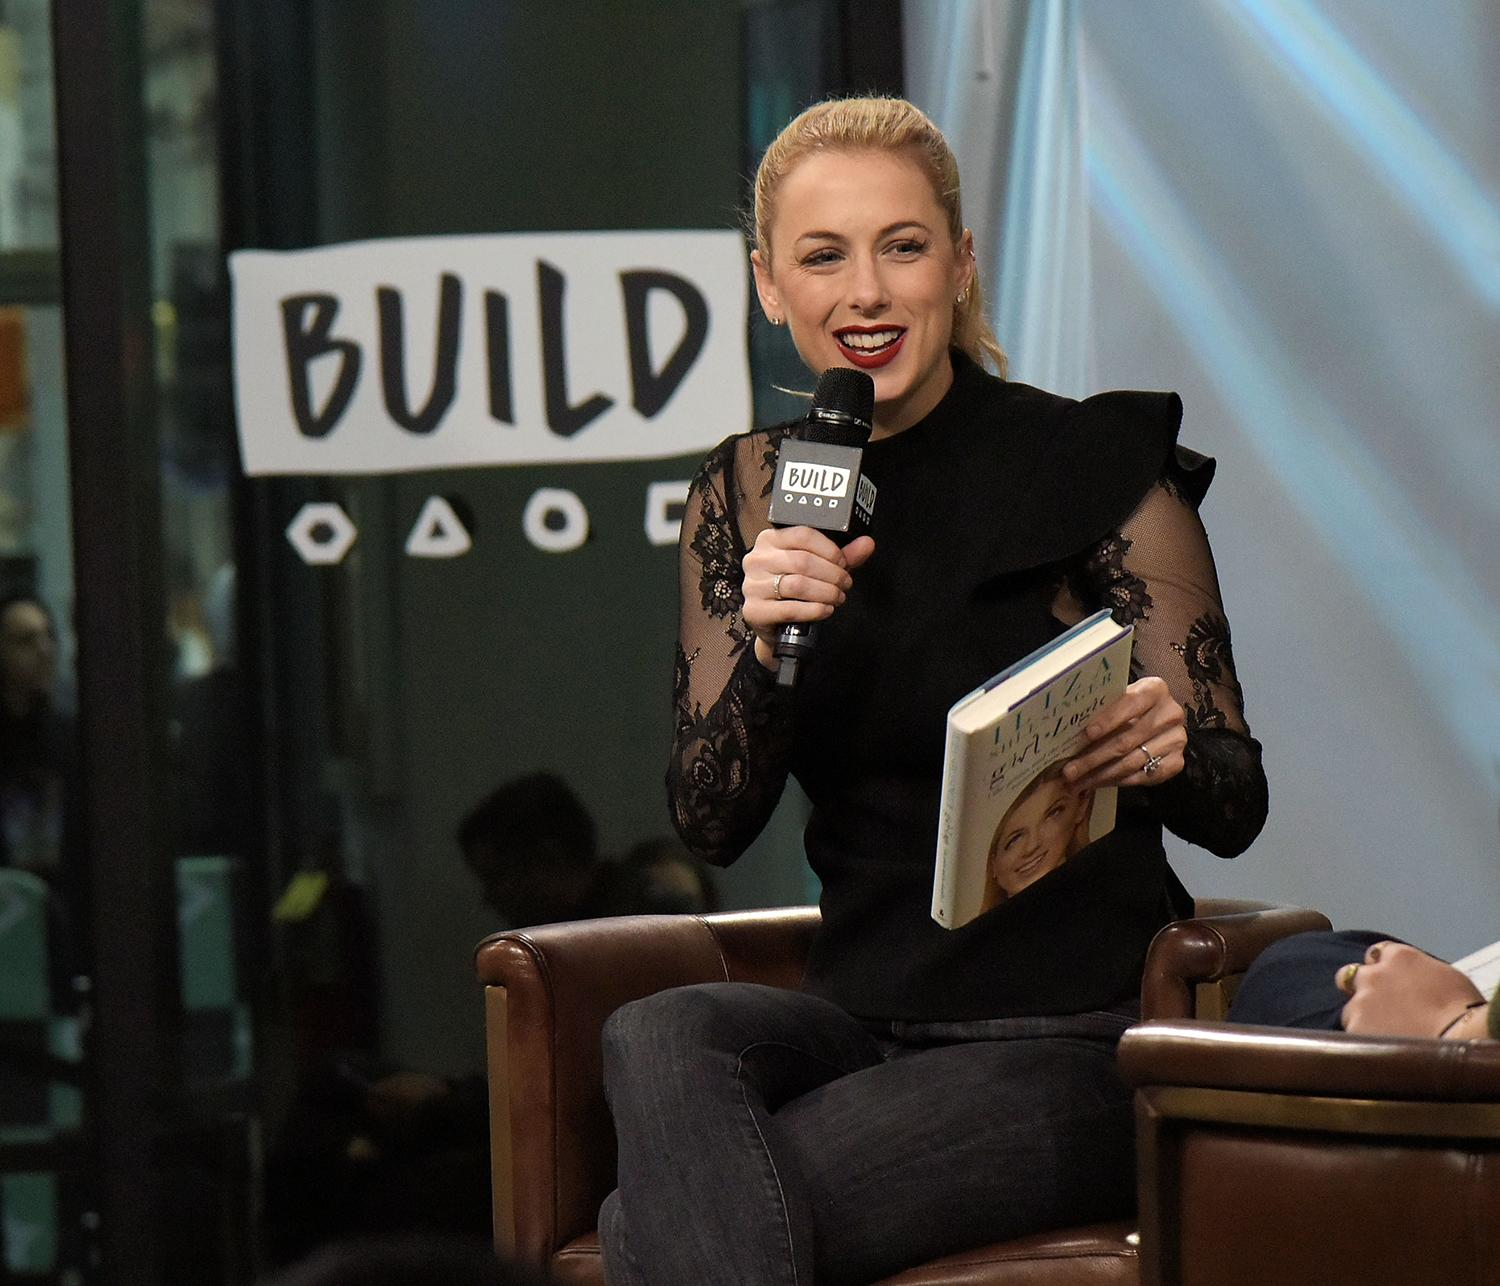 Story Comedian Iliza Shlesinger Wedding: Comedian Iliza Shlesinger On Body Shaming [Video]